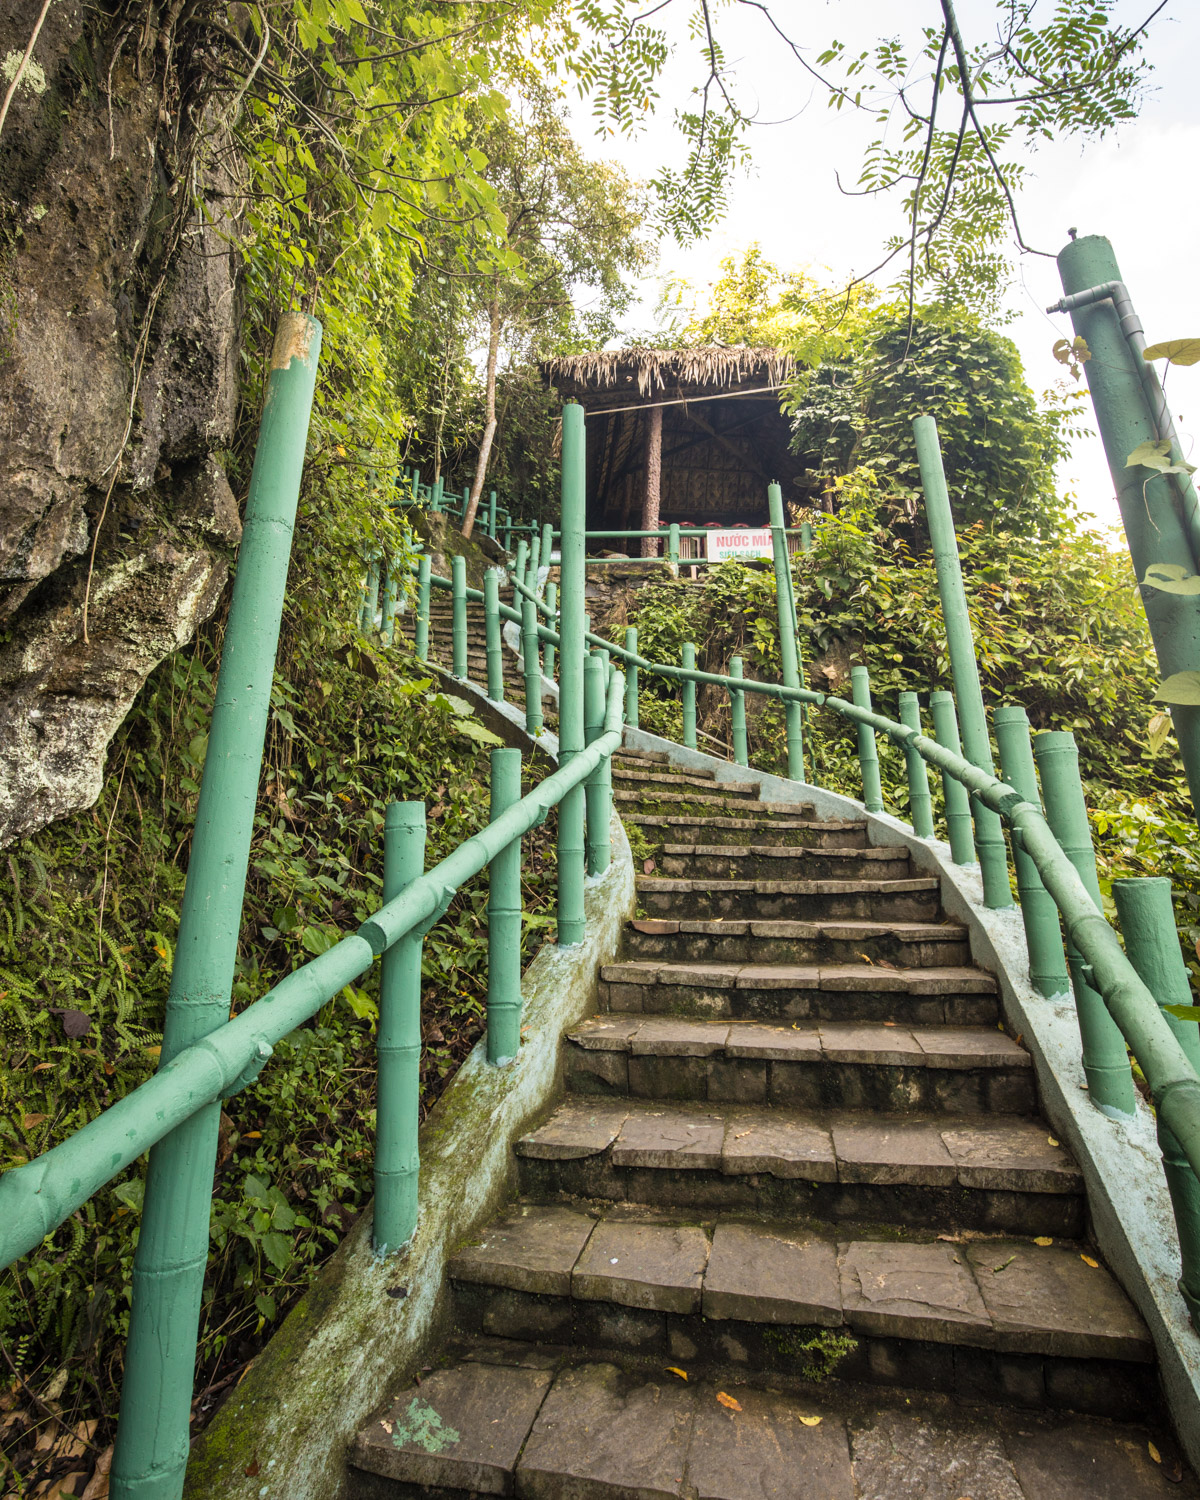 Phong Nha Ke Bang National Park - The stairs at Phong Nha Cave